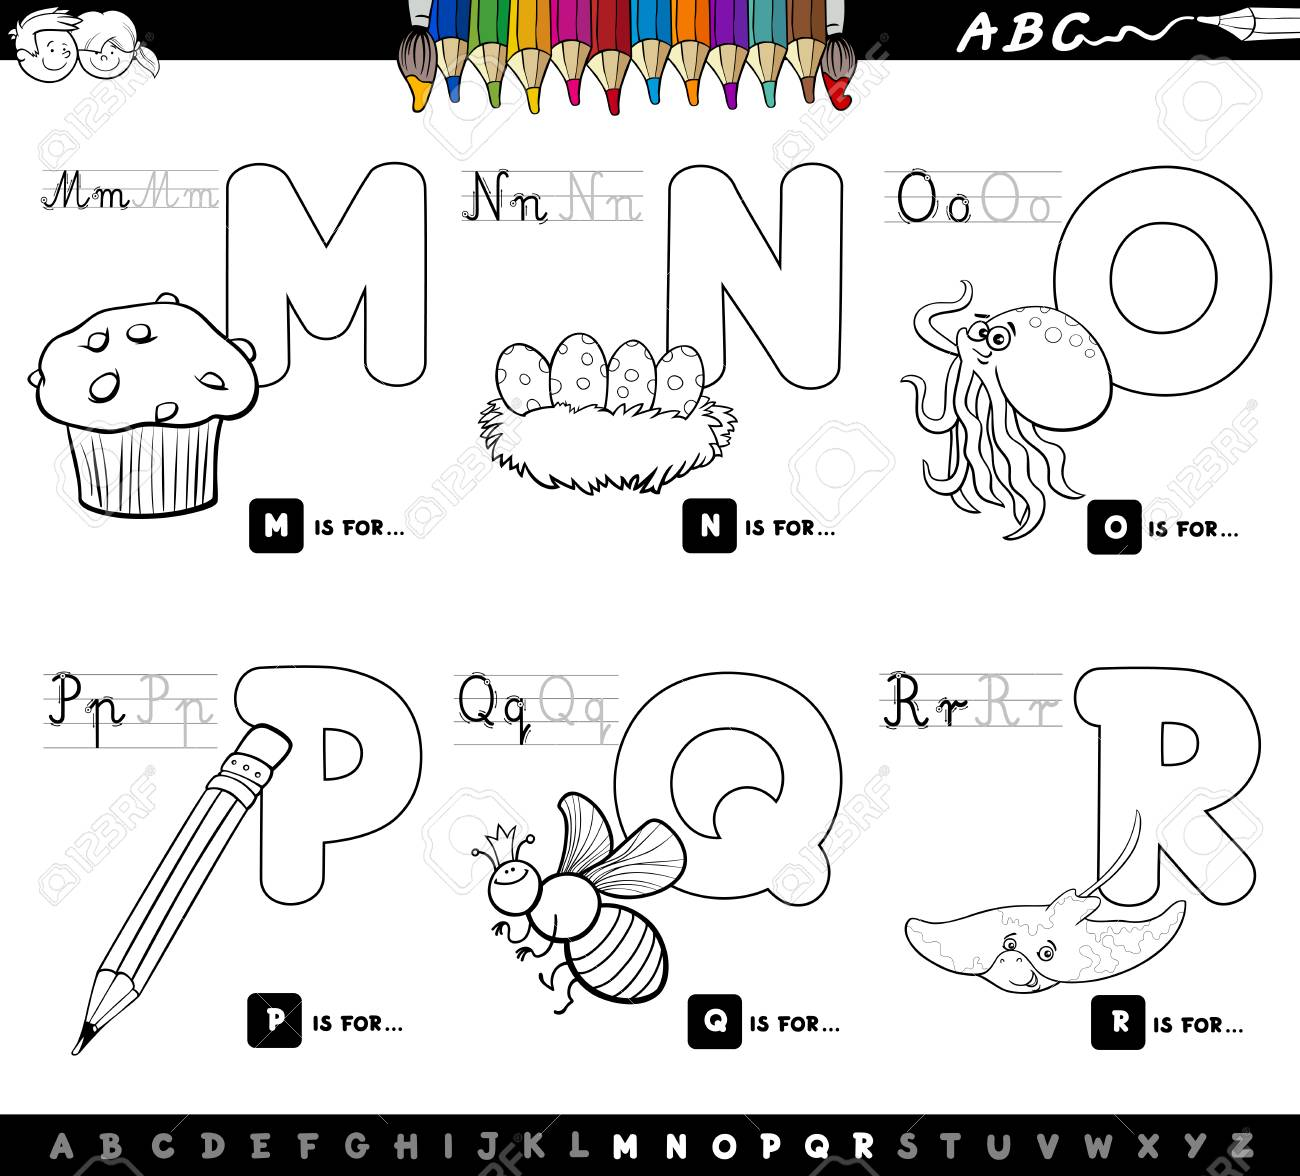 Black And White Cartoon Illustration Of Capital Letters Alphabet Educational Set For Reading Writing Learning